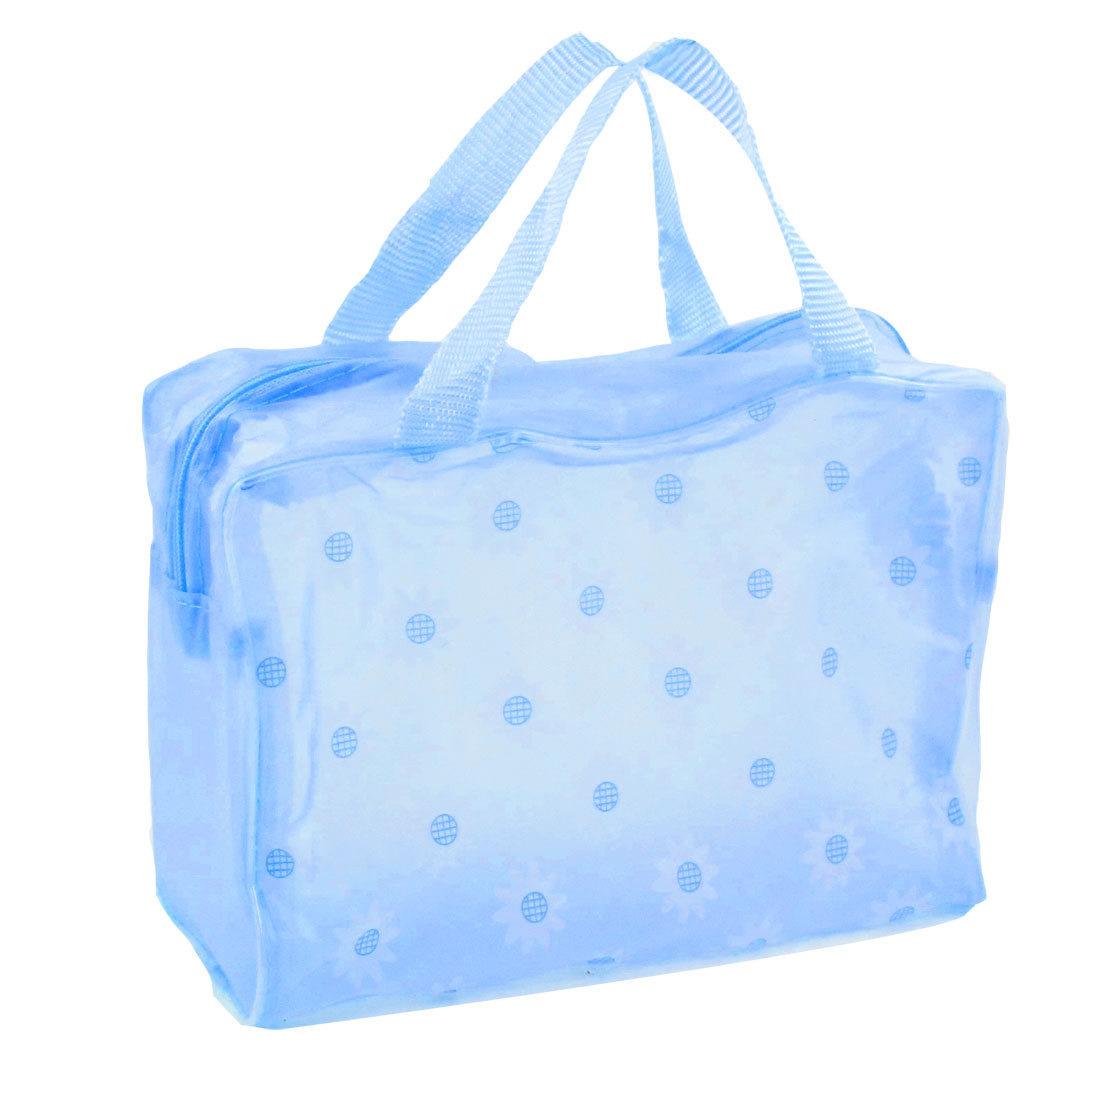 Travelling Zippered Flodable Floral Print Polyethylene Shower Bag Light Blue